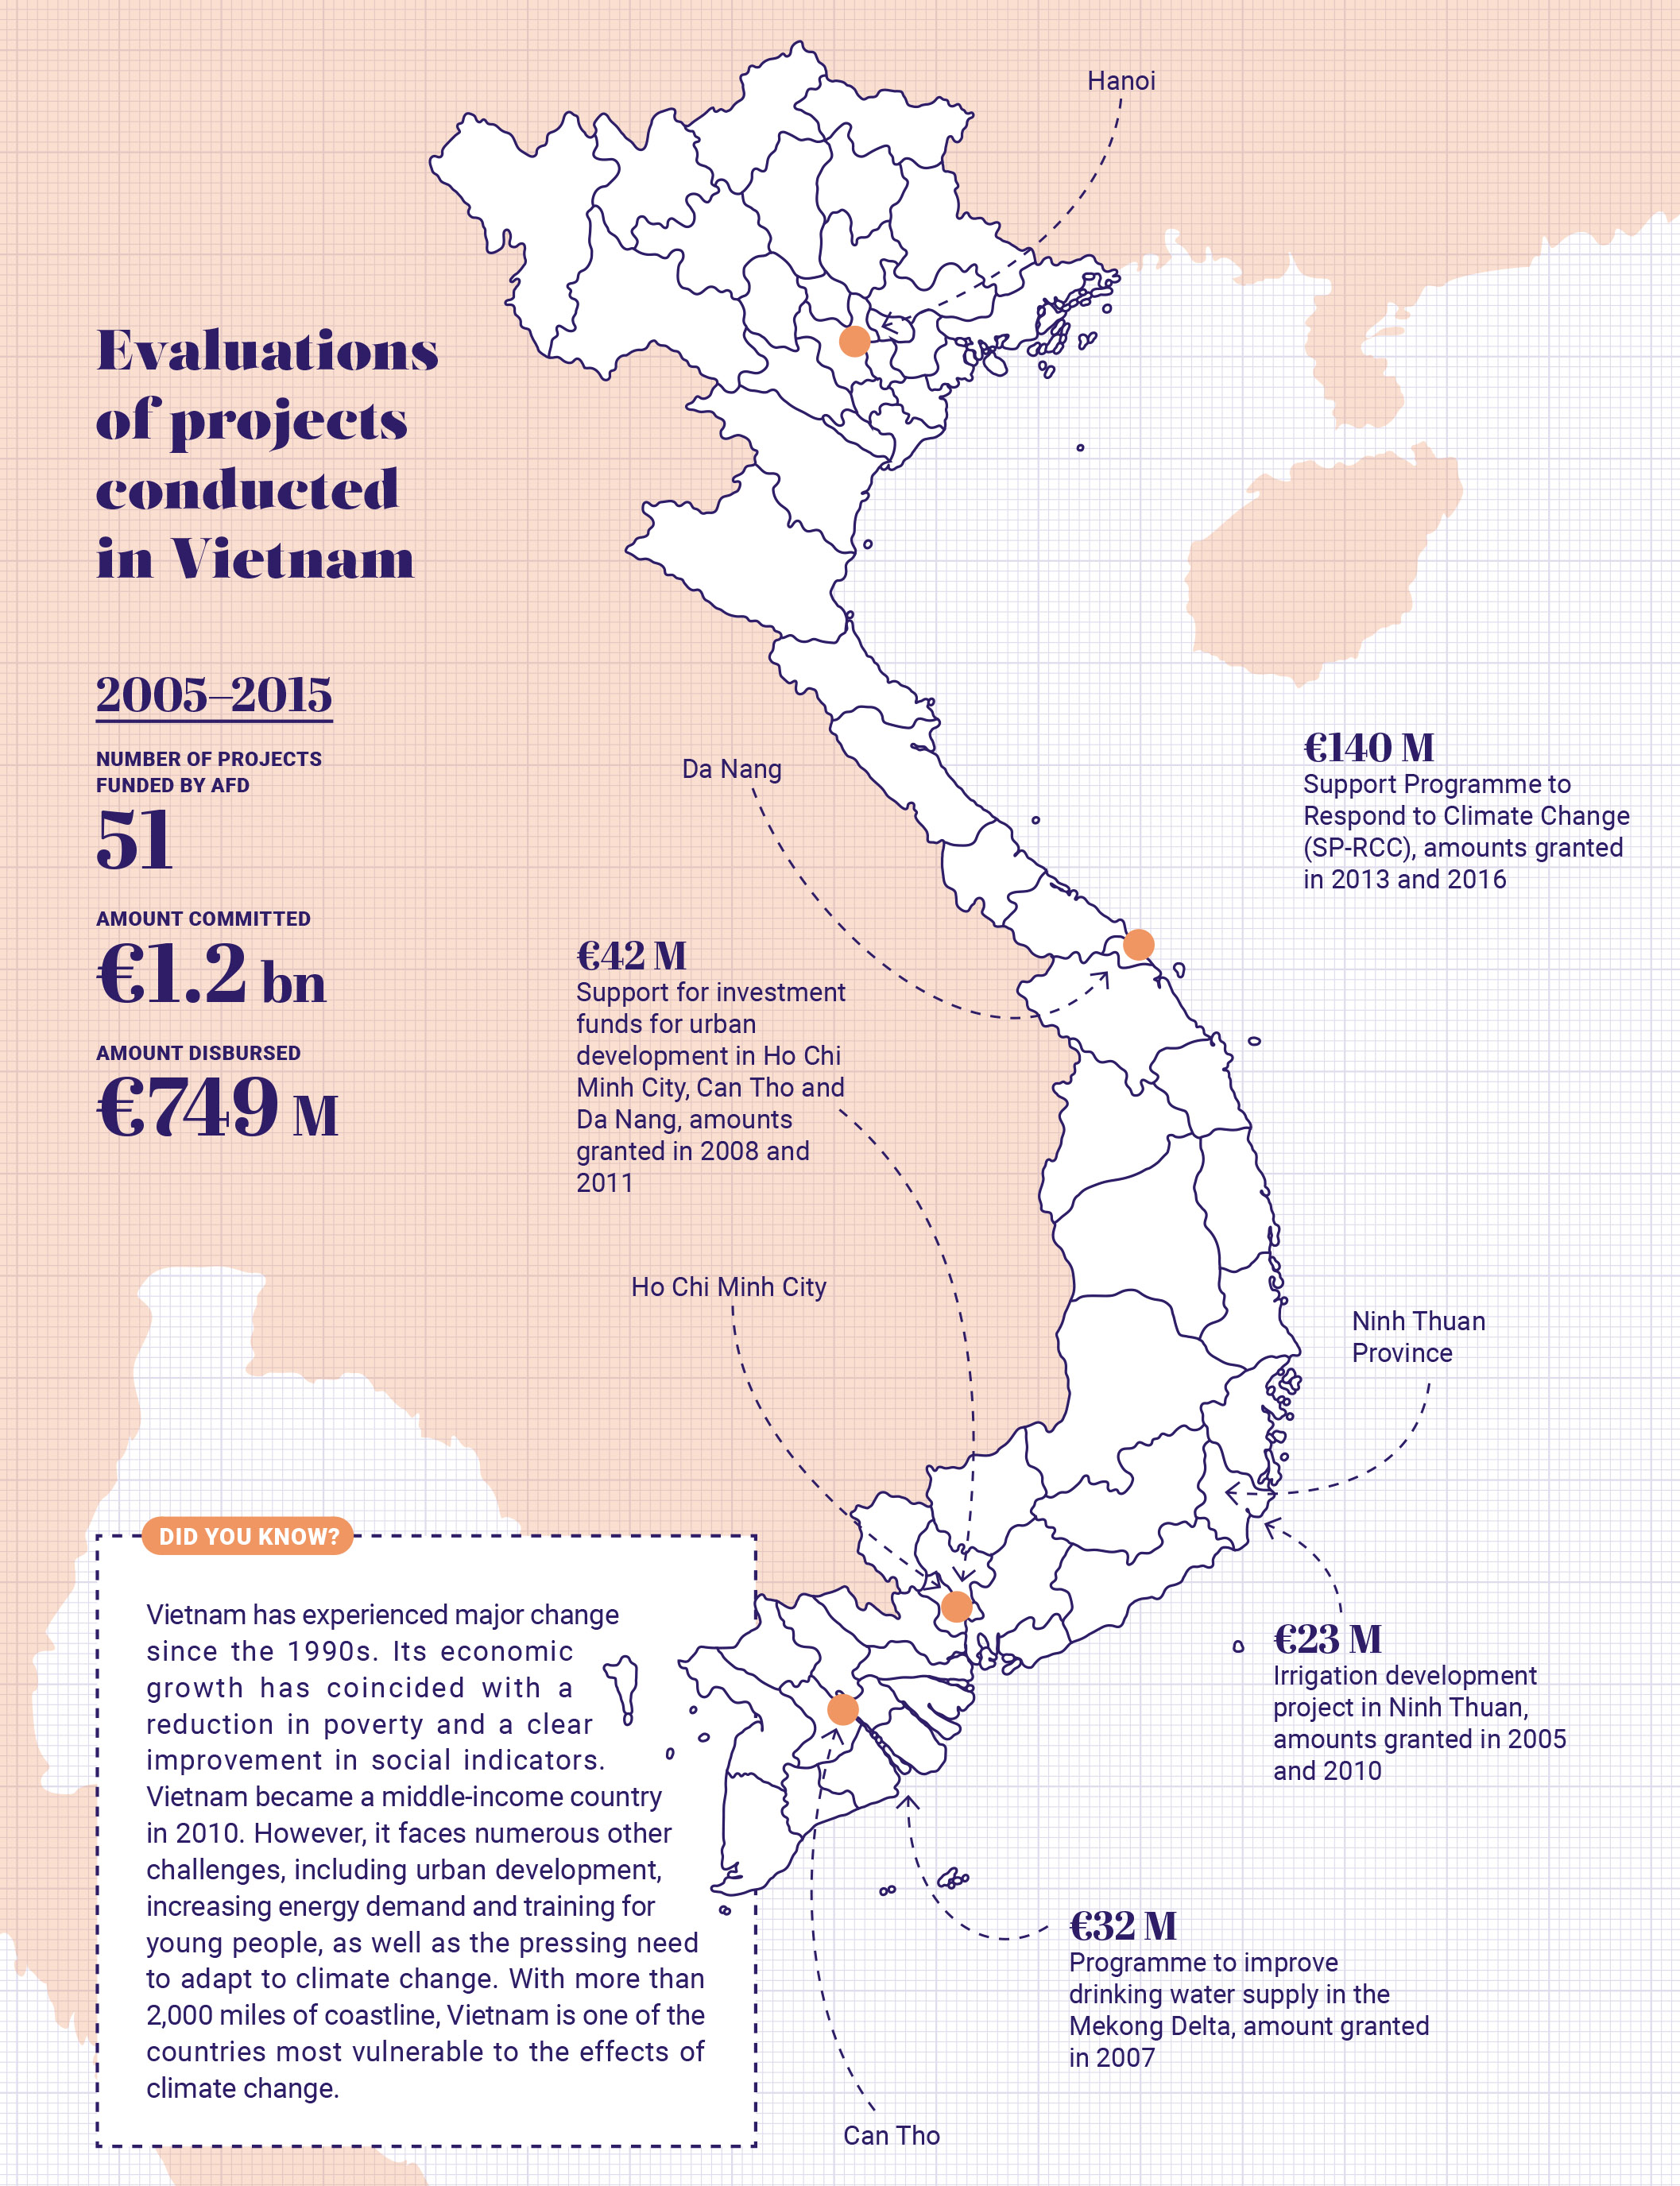 Evaluations of projects conducted in Vietnam